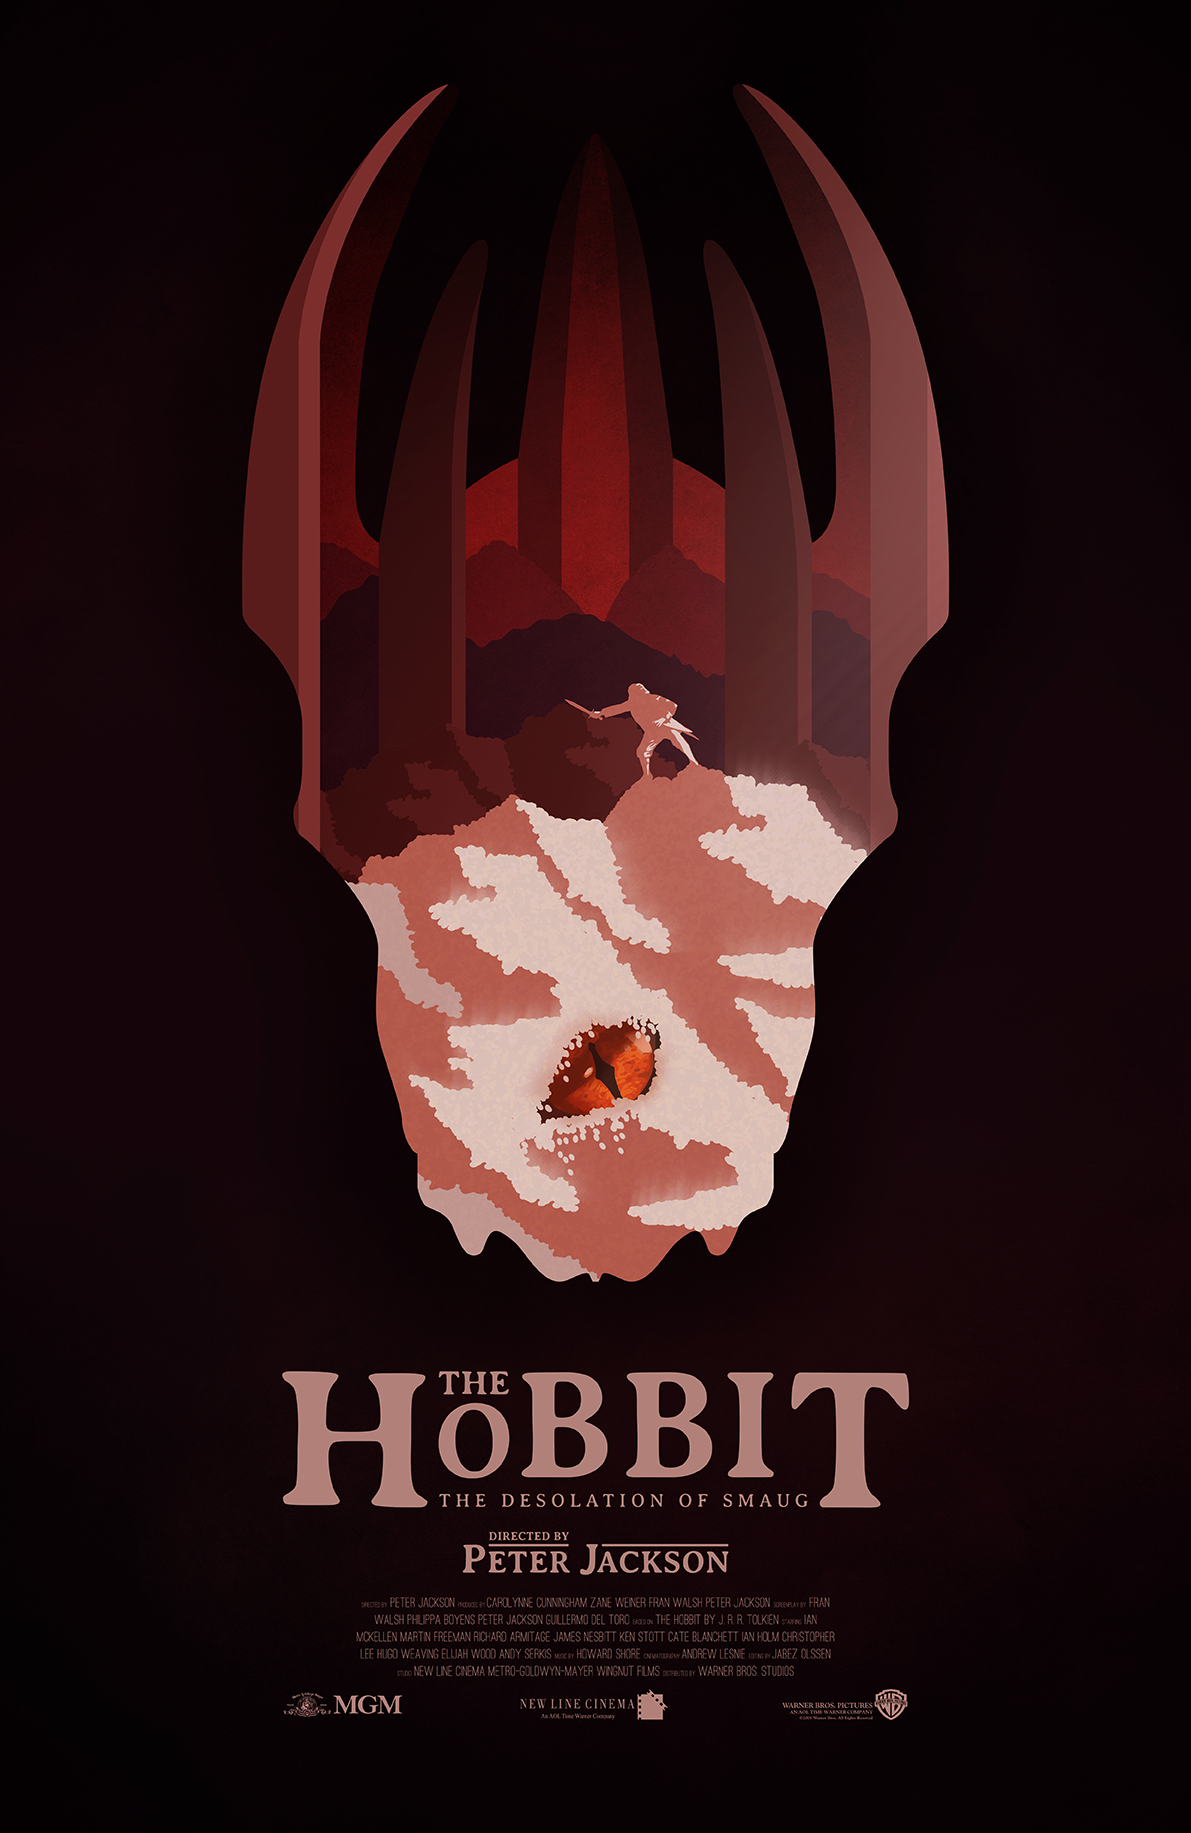 The Hobbit Movie Posters on Behance